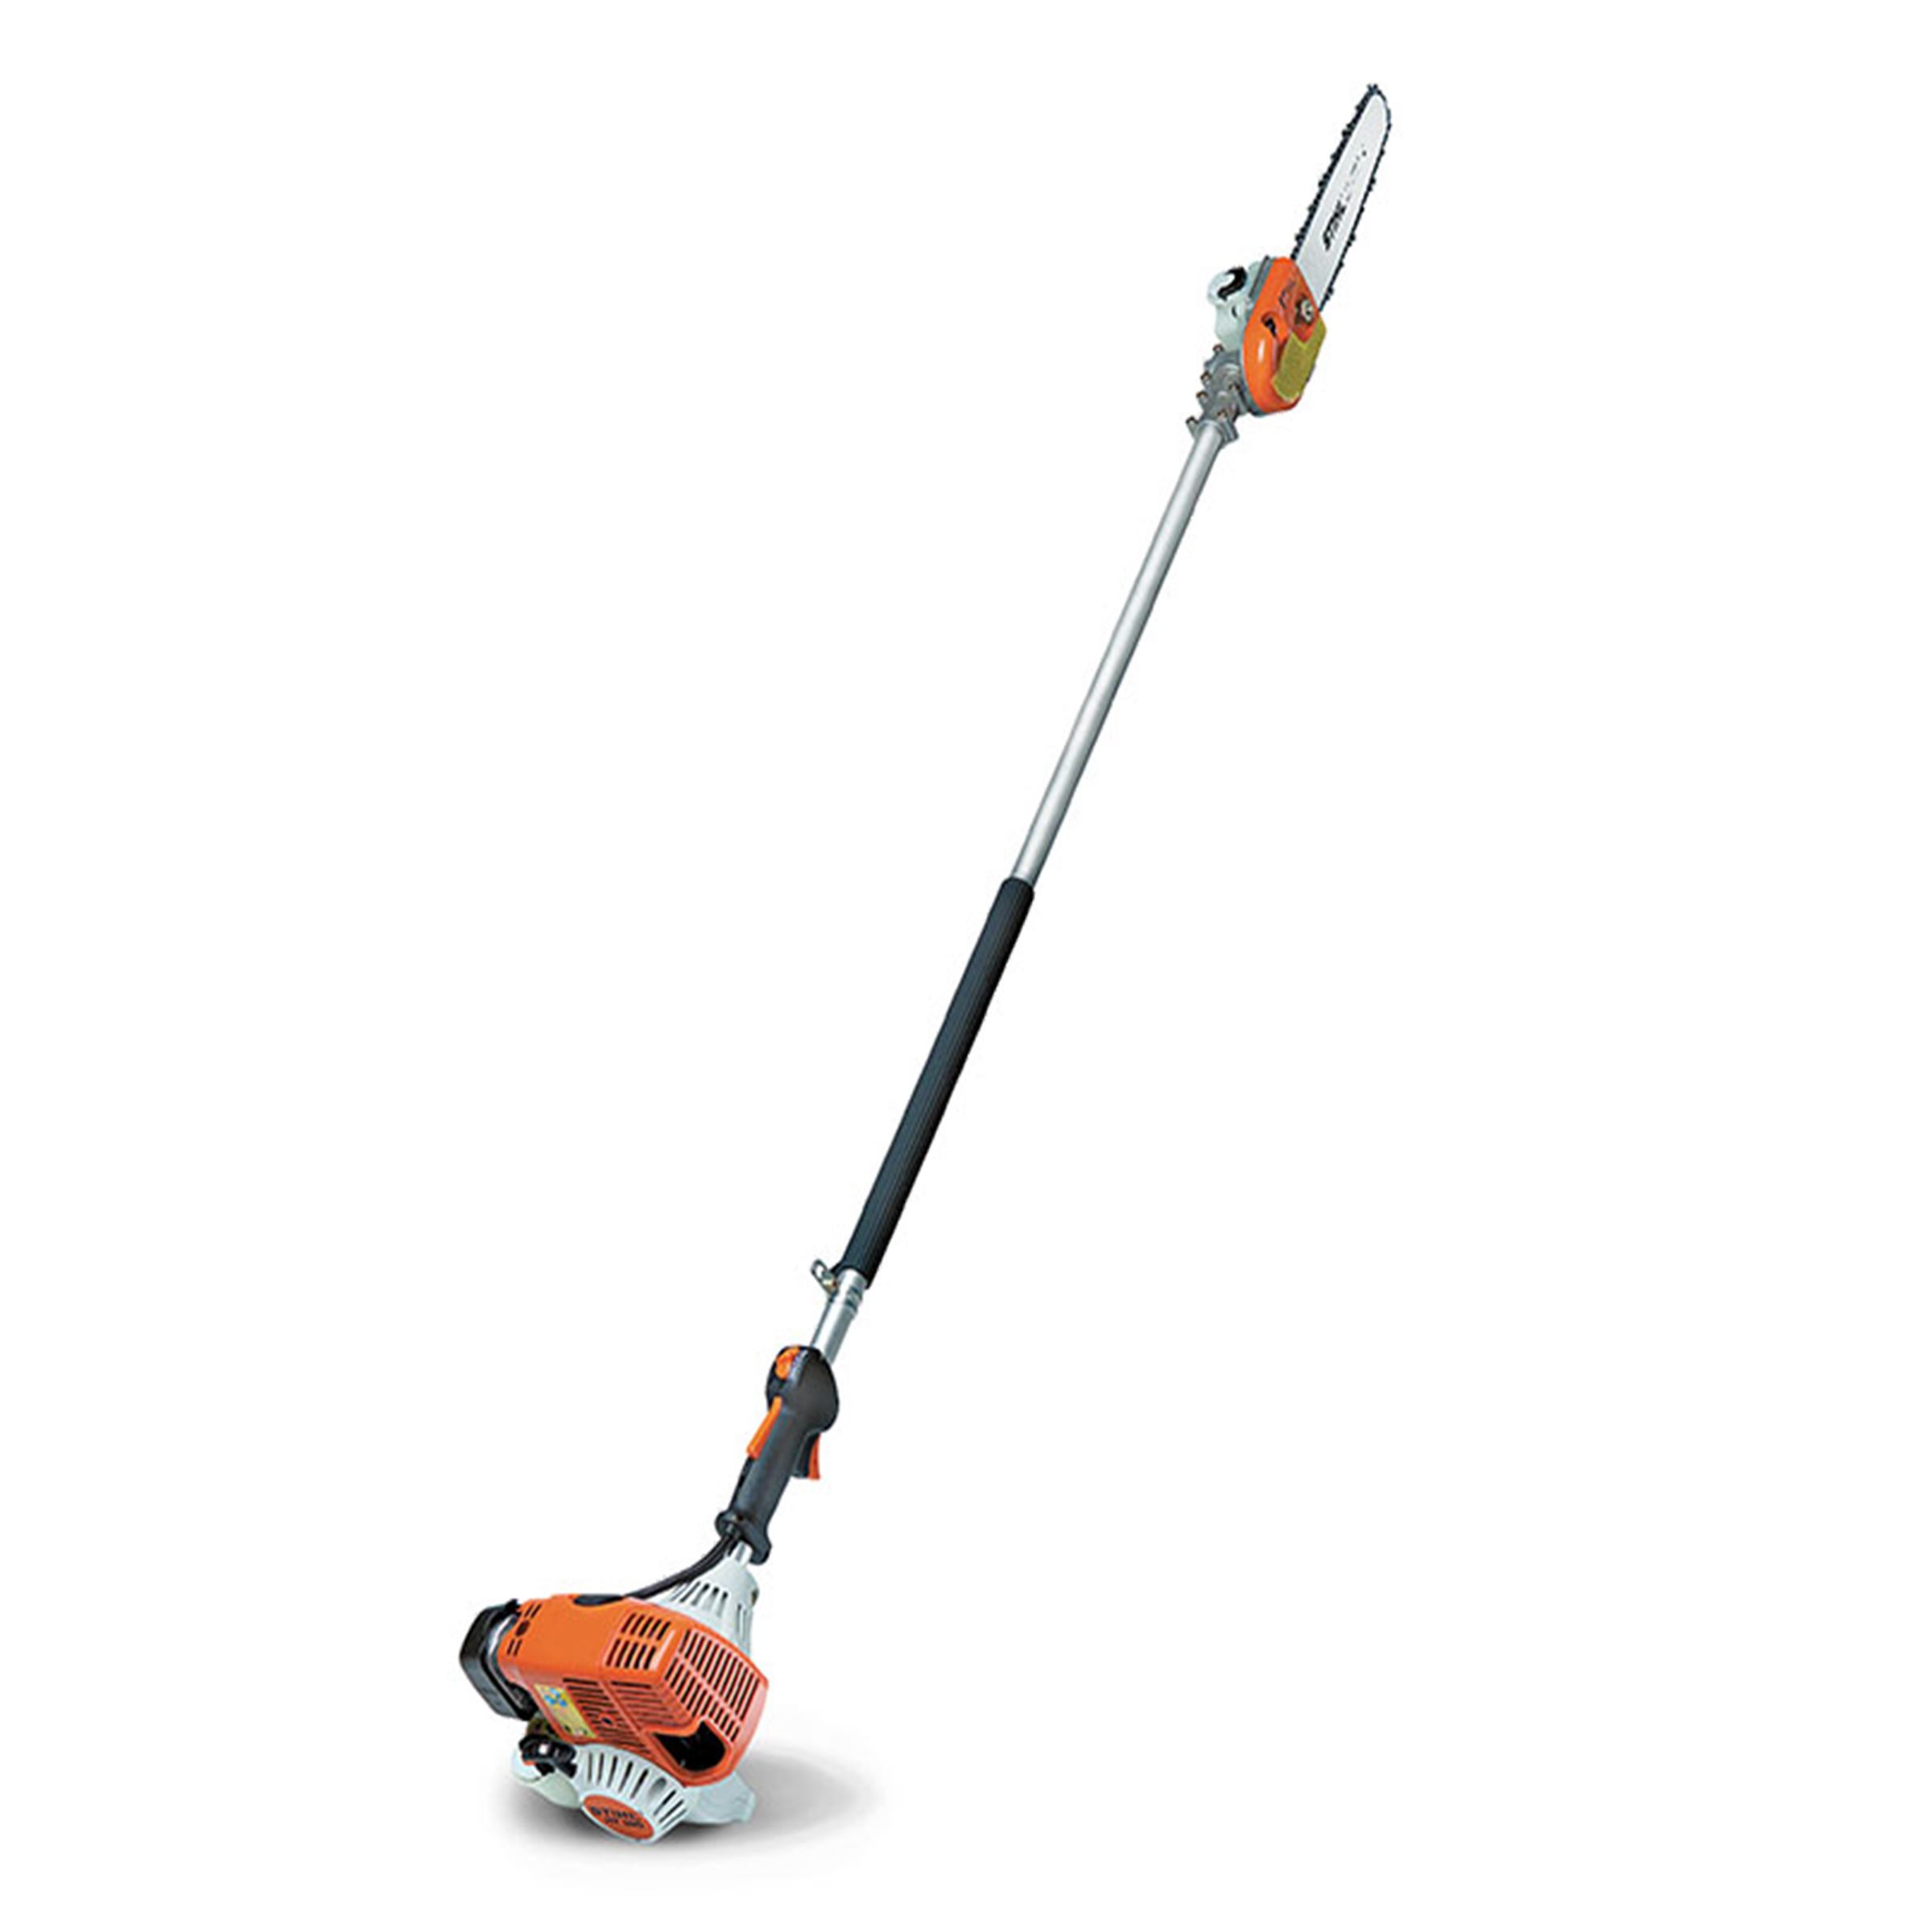 Stihl Ht 100 Pole Saw Parts Diagram Free Wiring Diagram For You